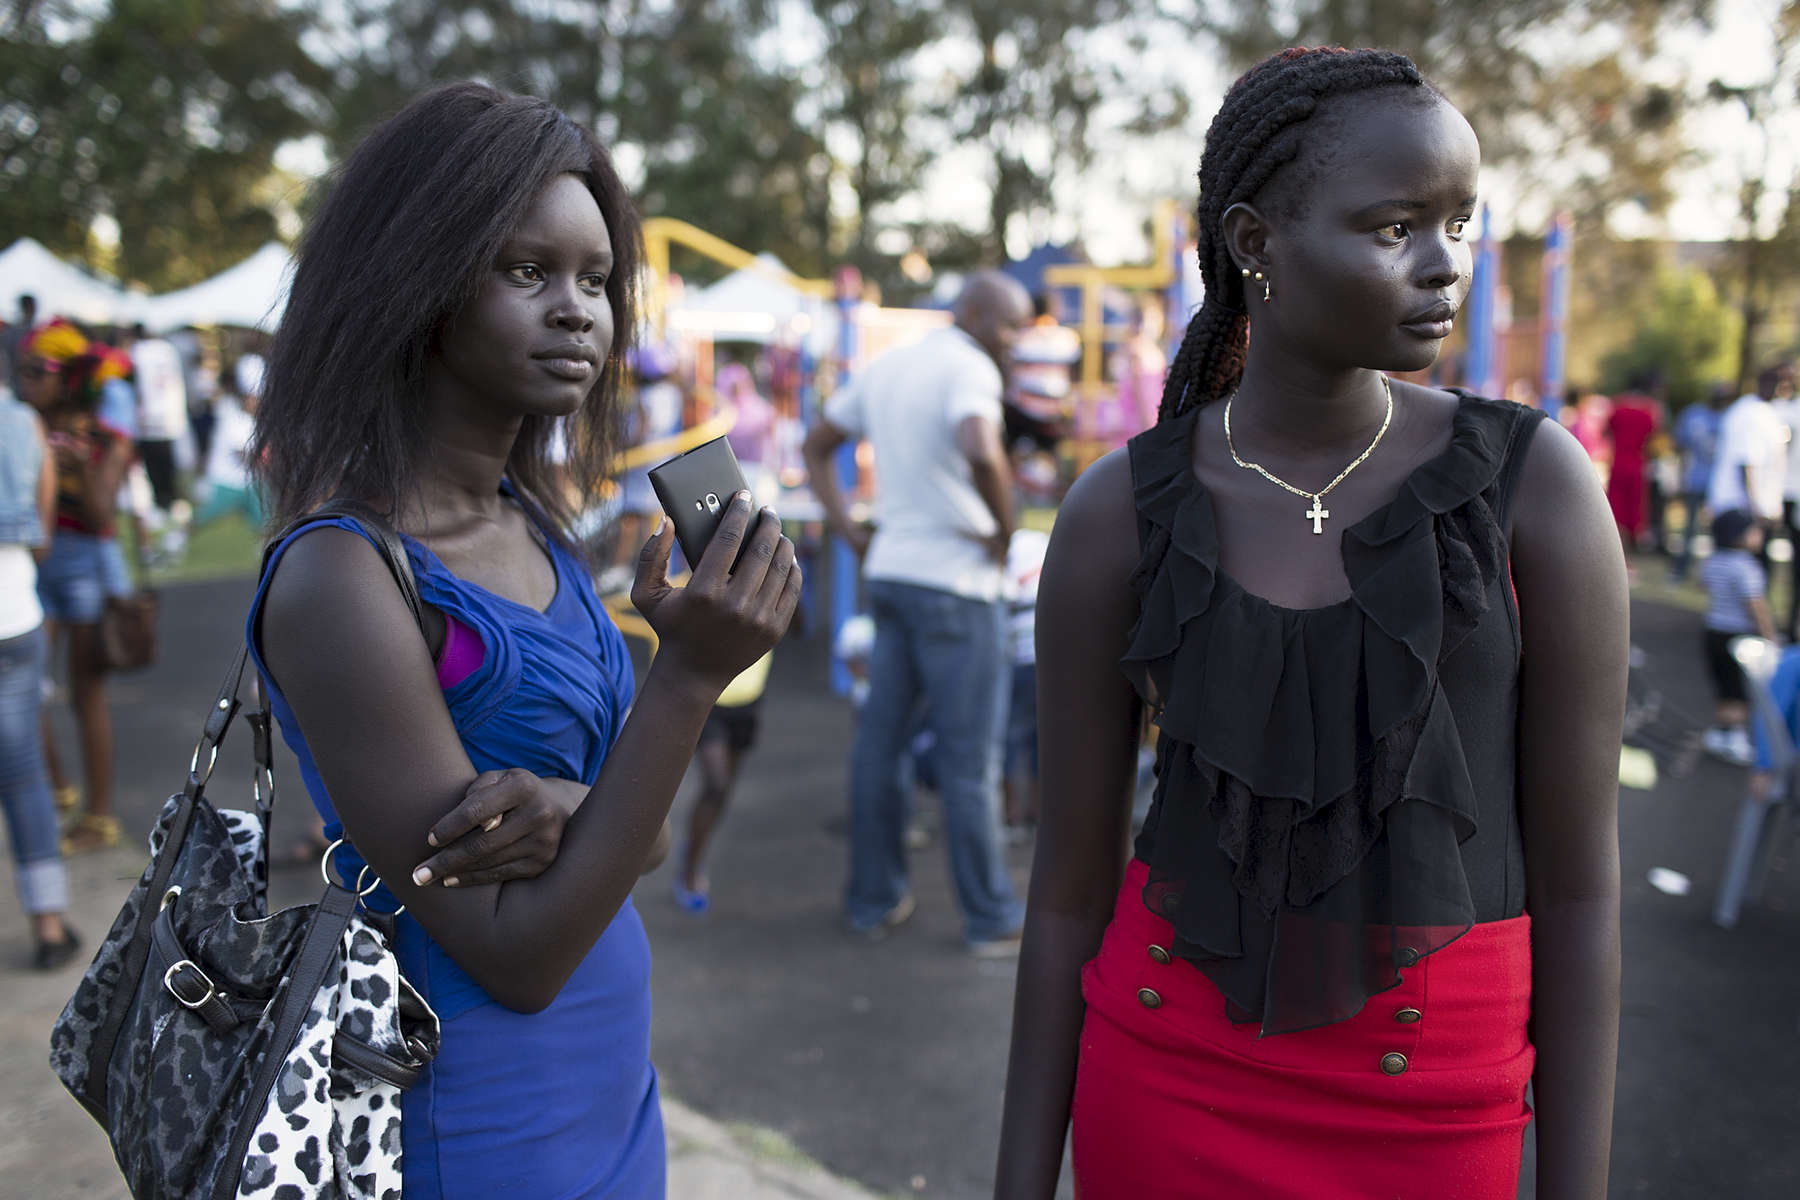 Ludia Ayak Manasseh (right) and a friend watch on as a group of young south Sudanese men walk past at Africultures Festival held in Western Sydney, 2013.